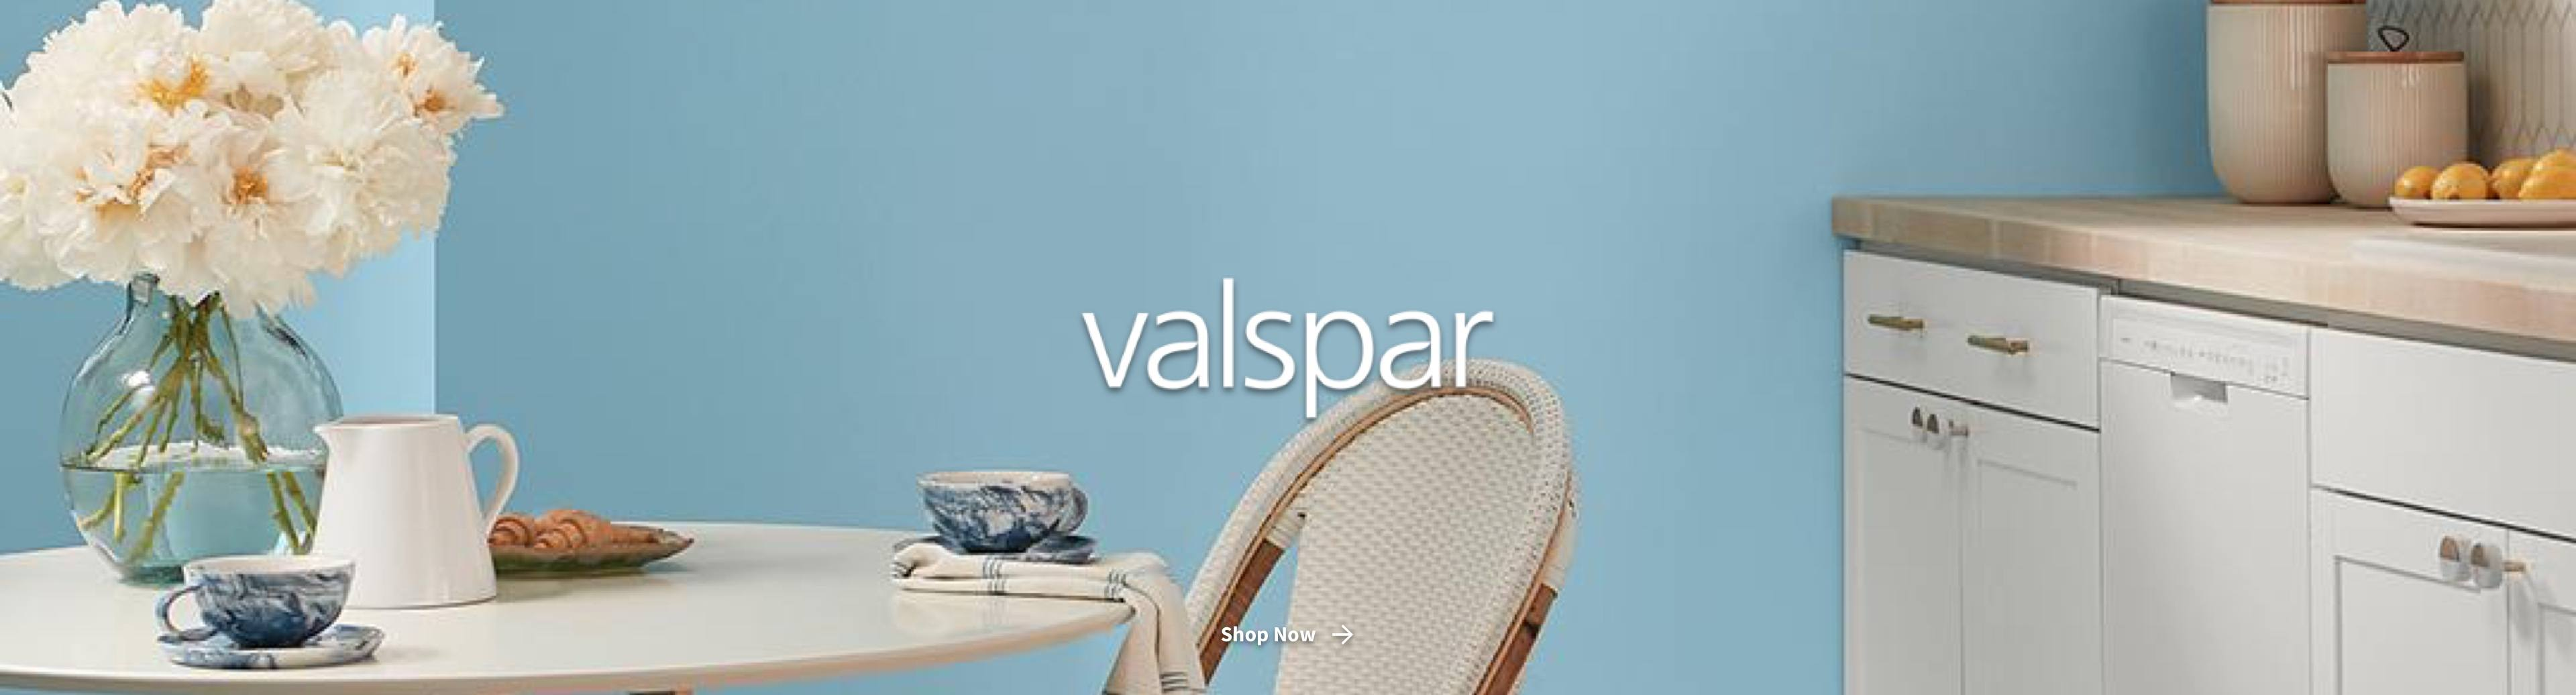 Valspar logo with blue-painted kitchen